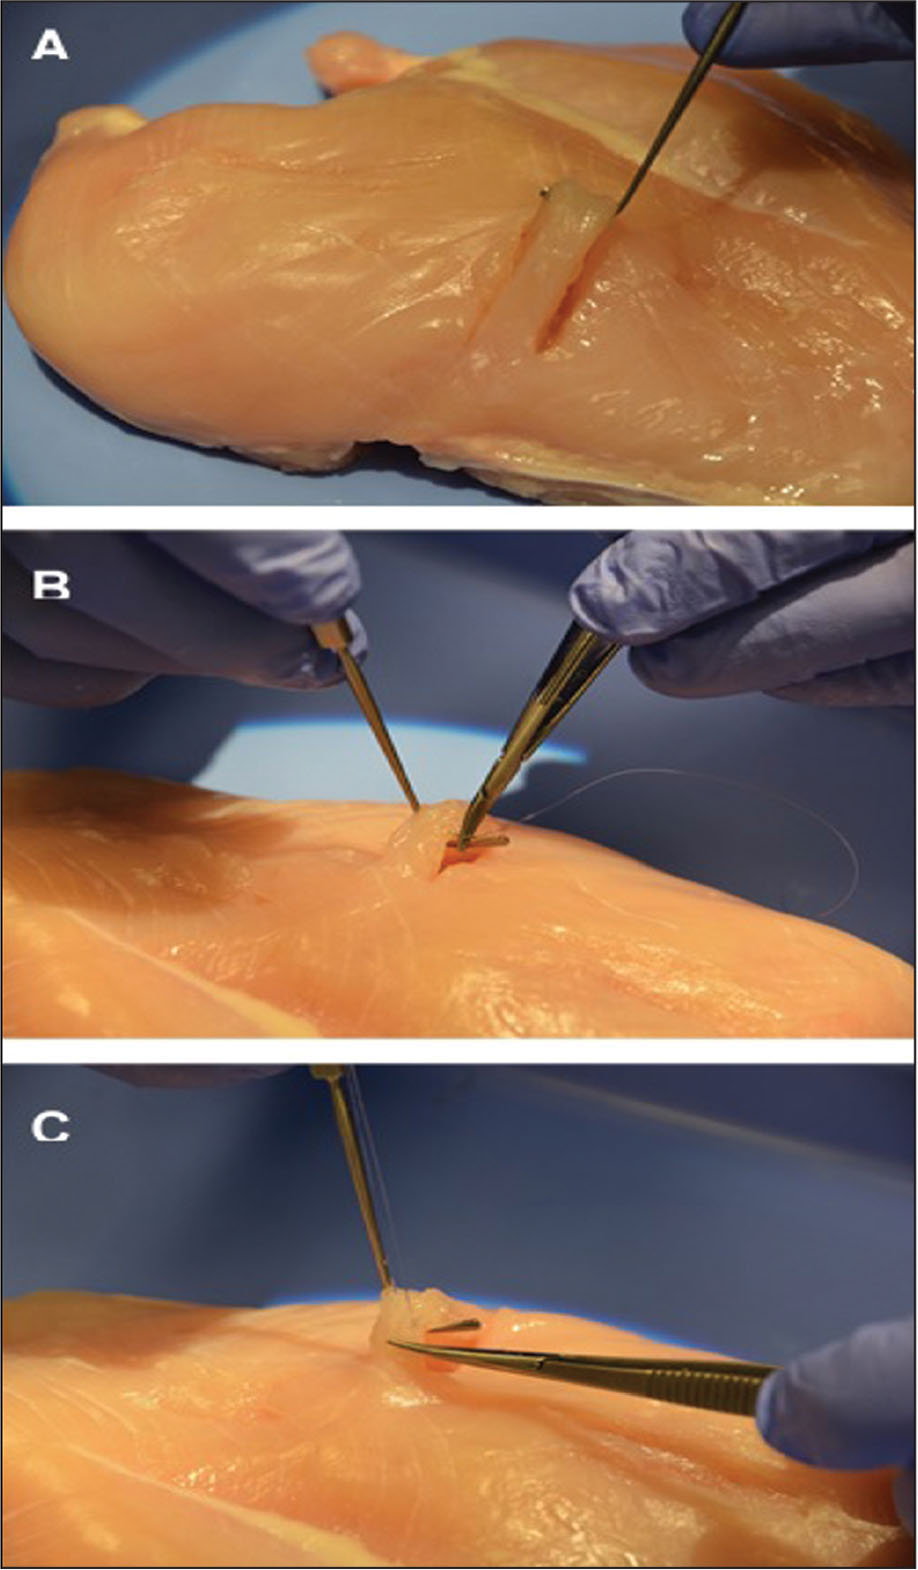 "Chicken breast was used to simulate a rectus muscle in the wet laboratory sessions. (A) The chicken strip is pulled up with the hook, (B) a 6-0 polyglactin 910 suture is passed through the ""muscle,"" and (C) the chicken strip is then disinserted with Westcott scissors."